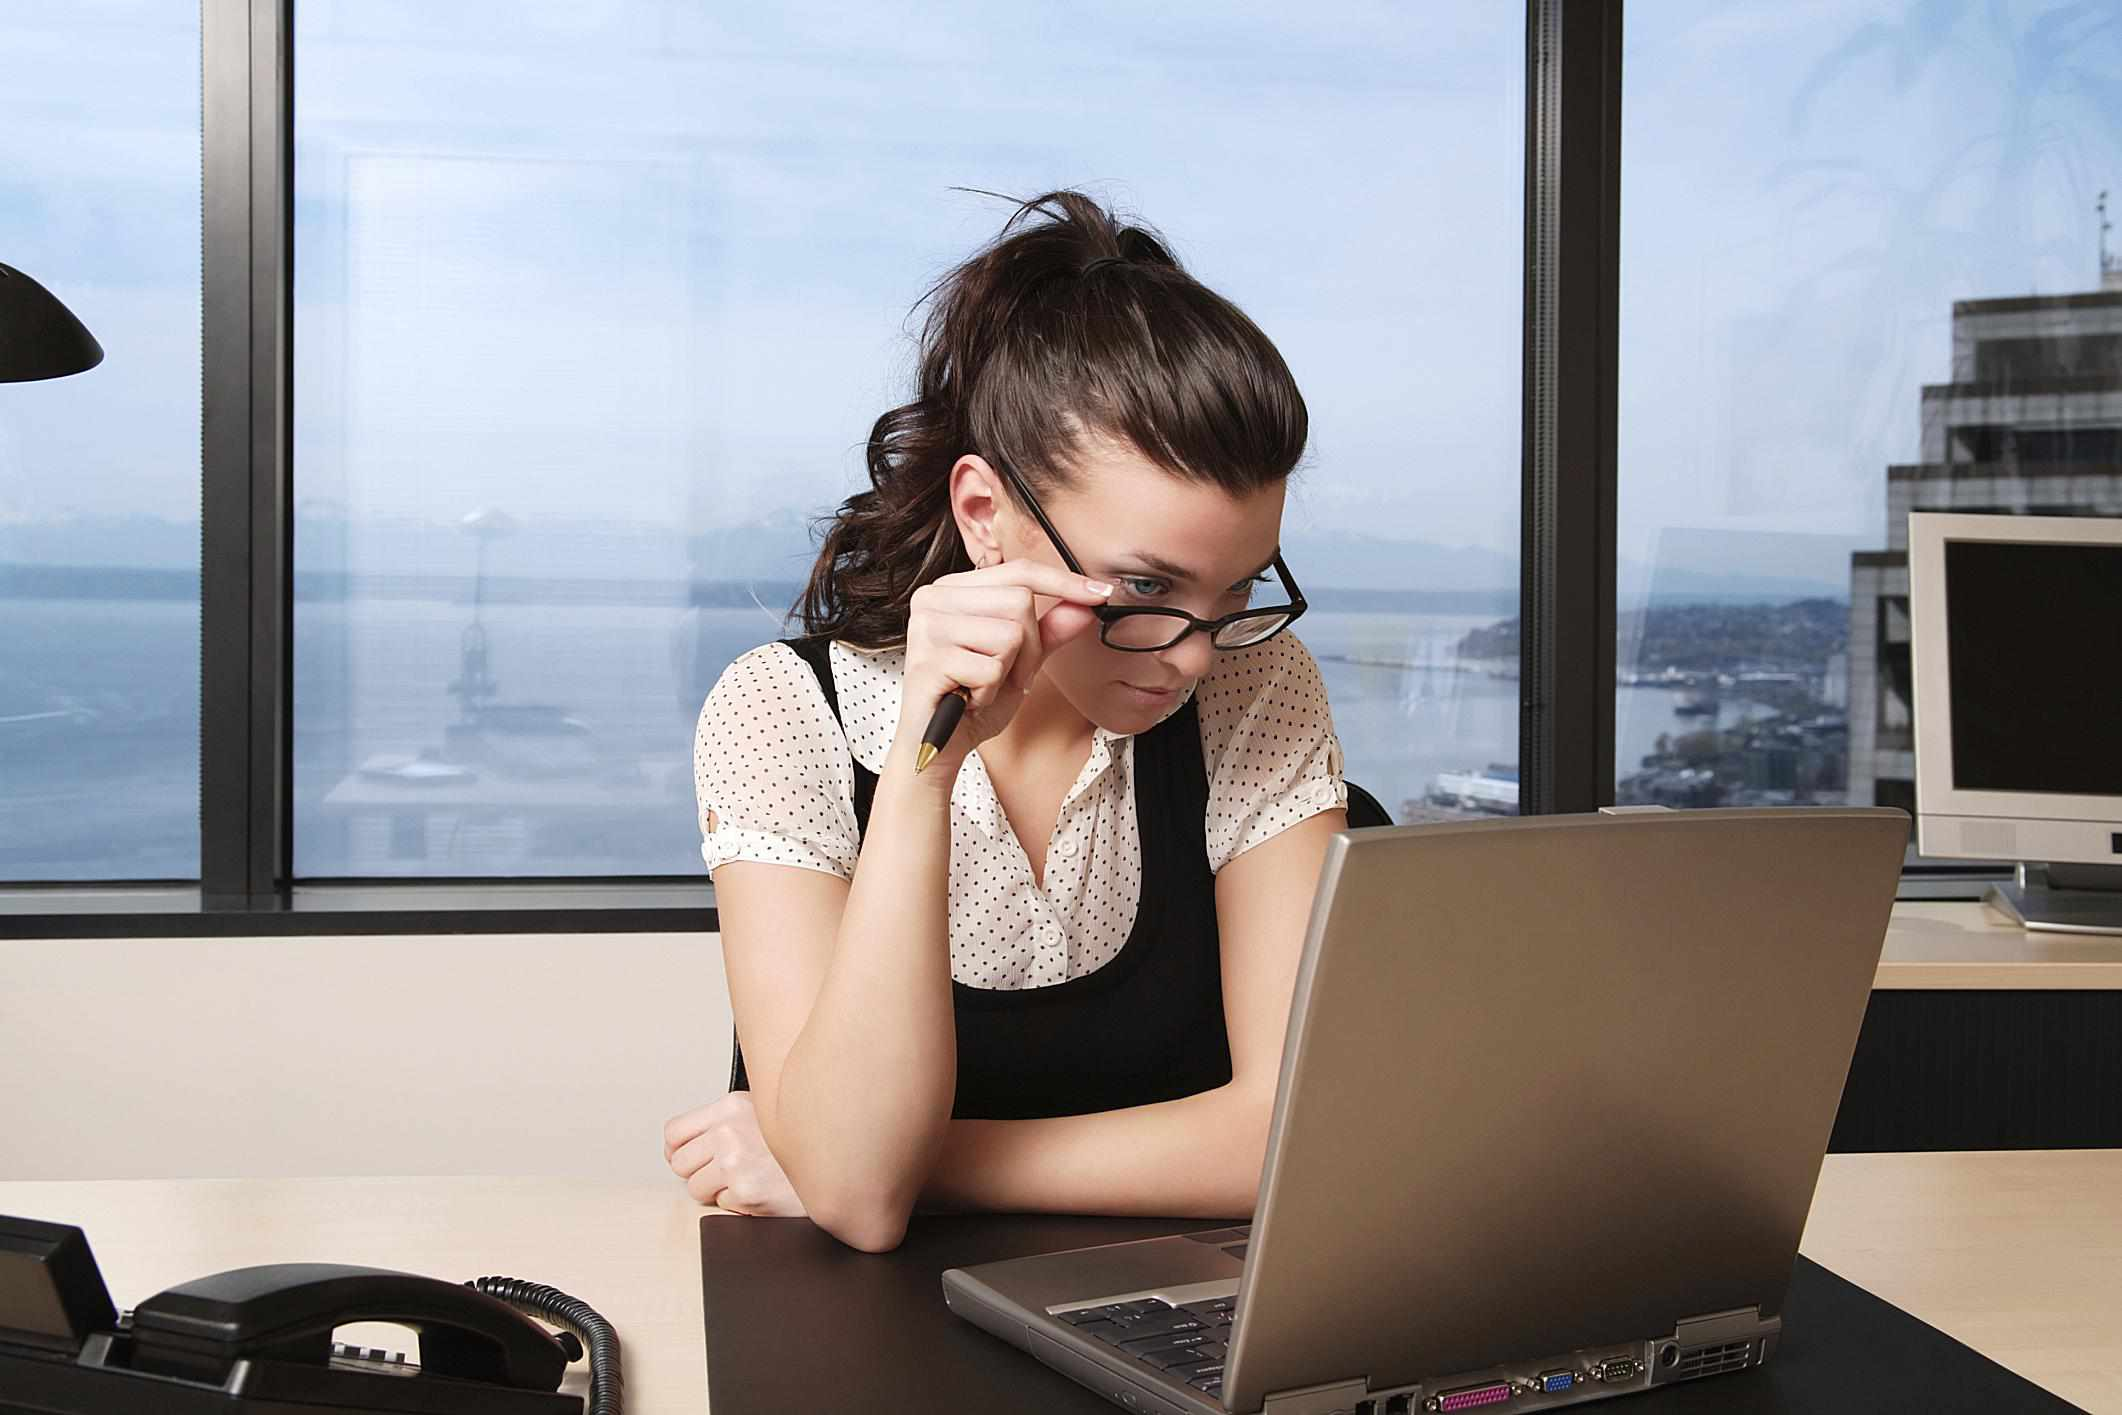 A woman looks over her glasses at her laptop screen